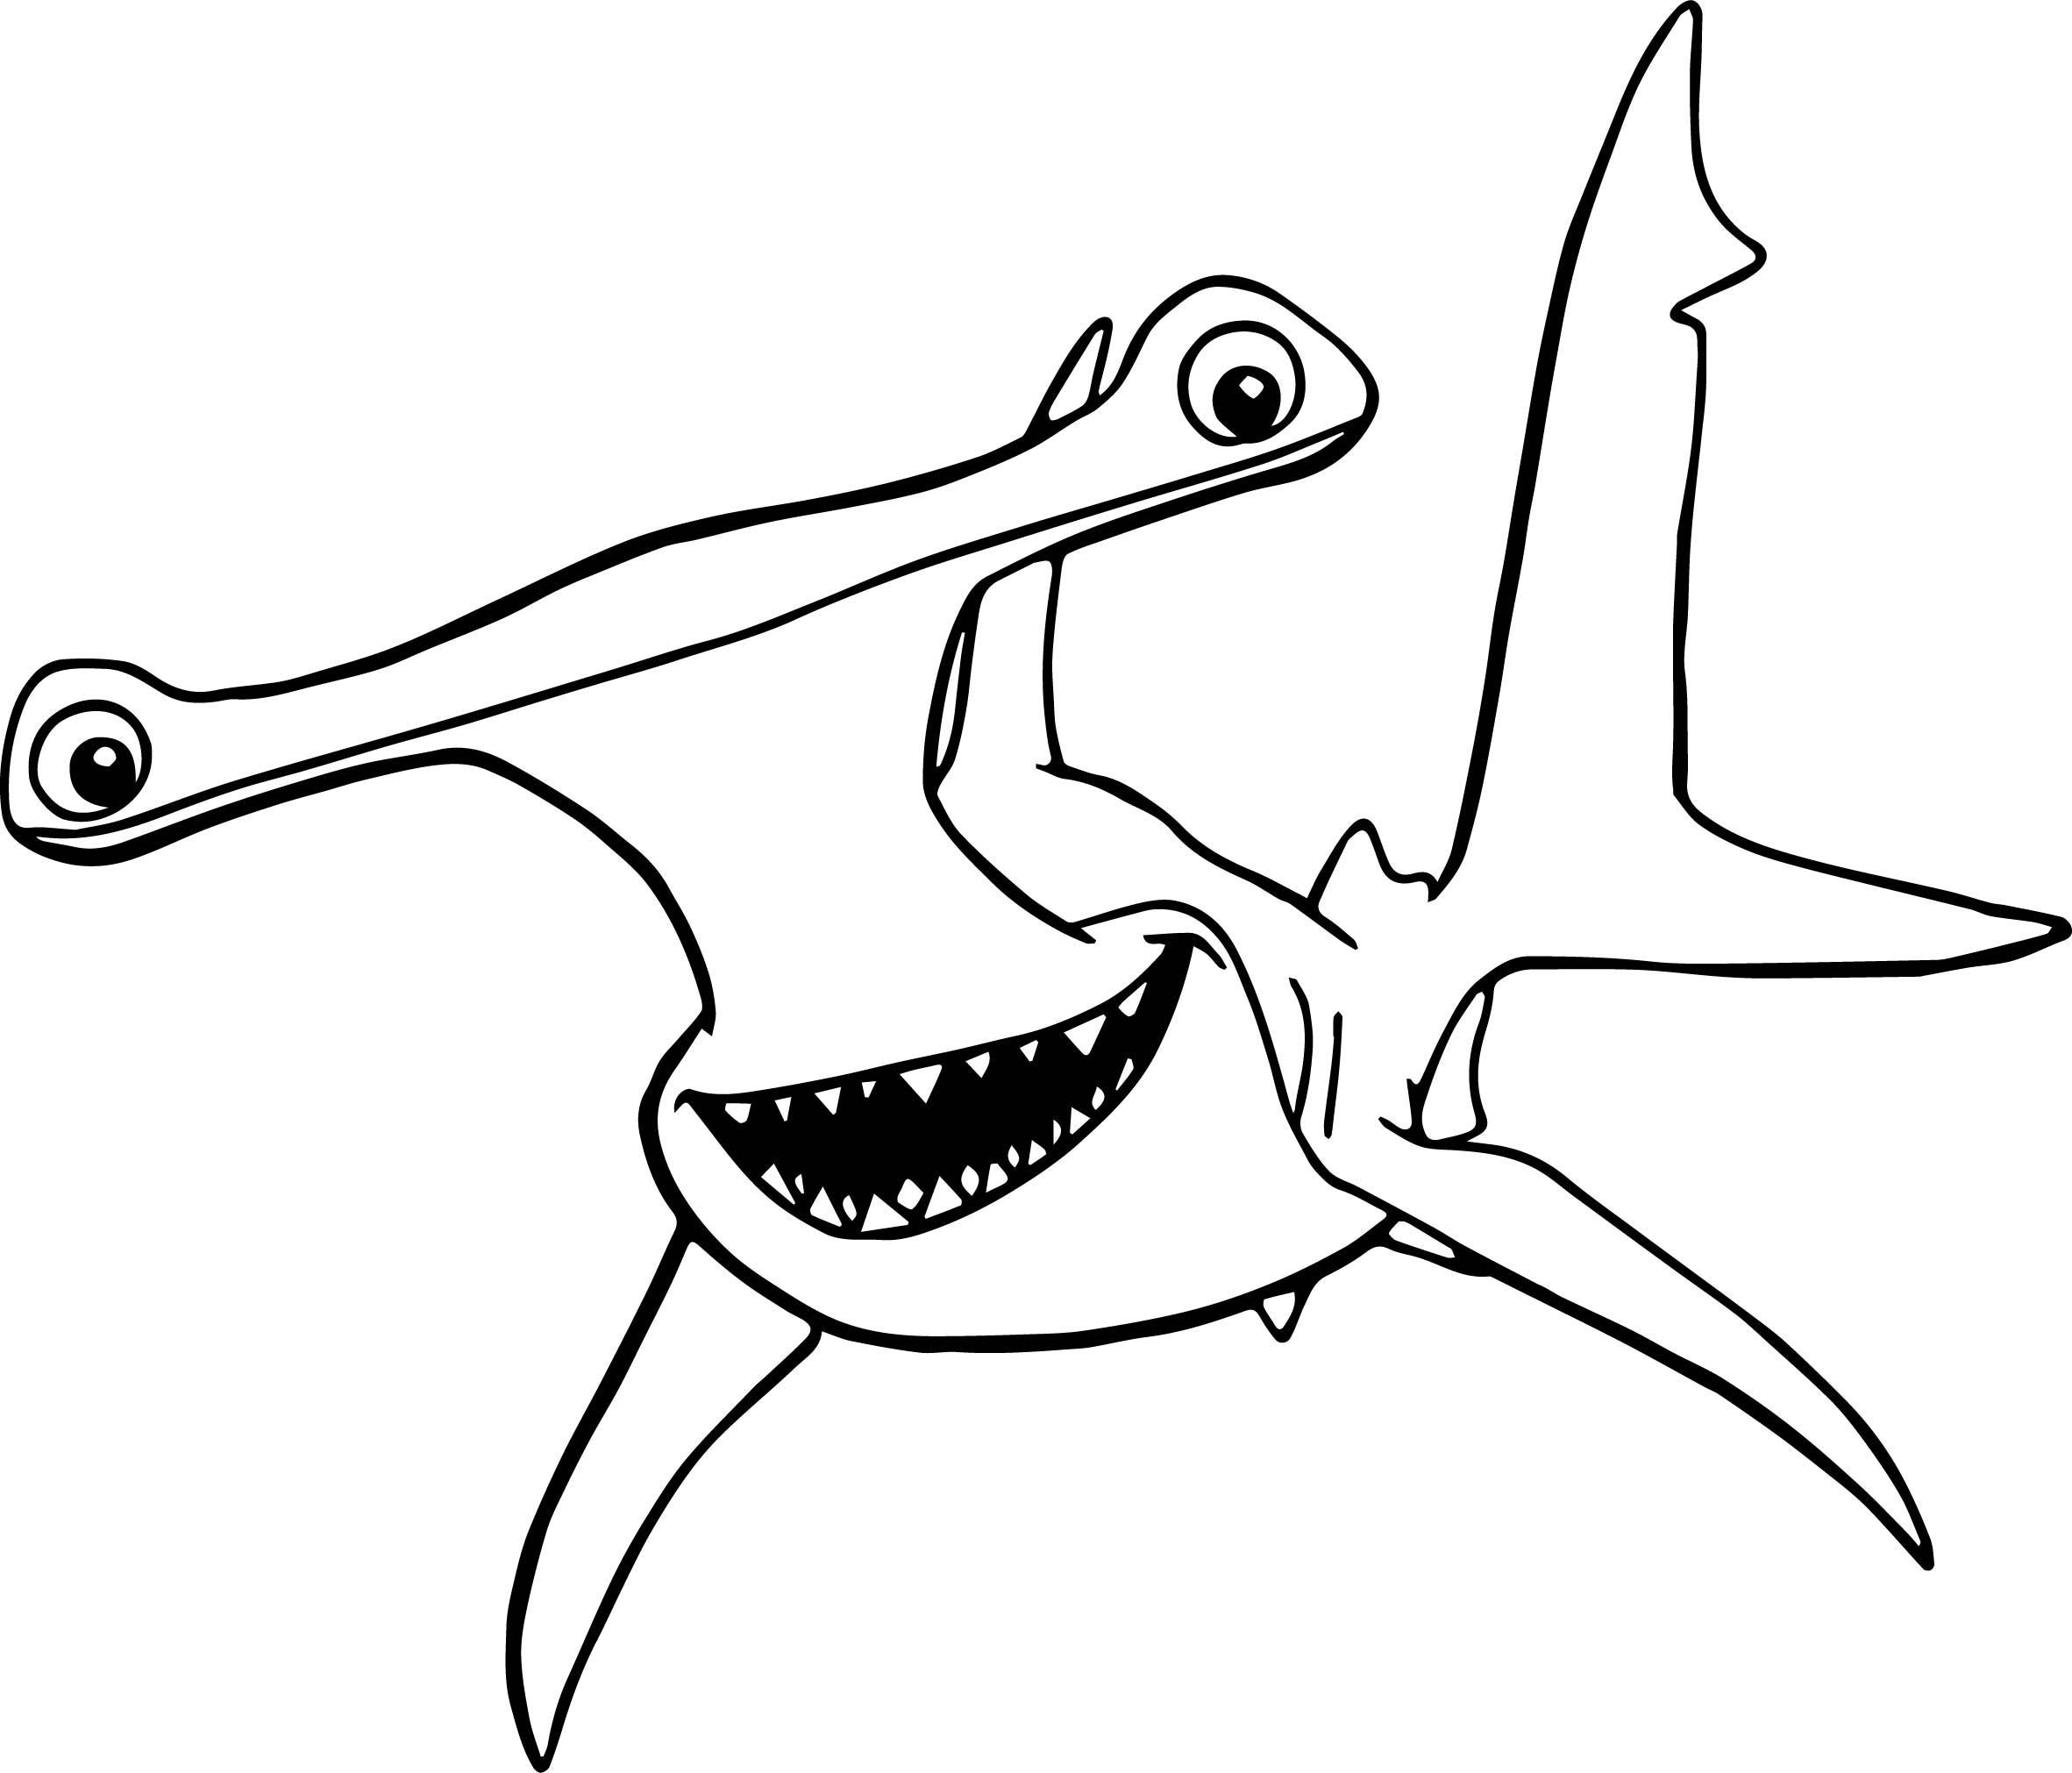 - Cool Disney Finding Nemo Anchor Coloring Pages Finding Nemo